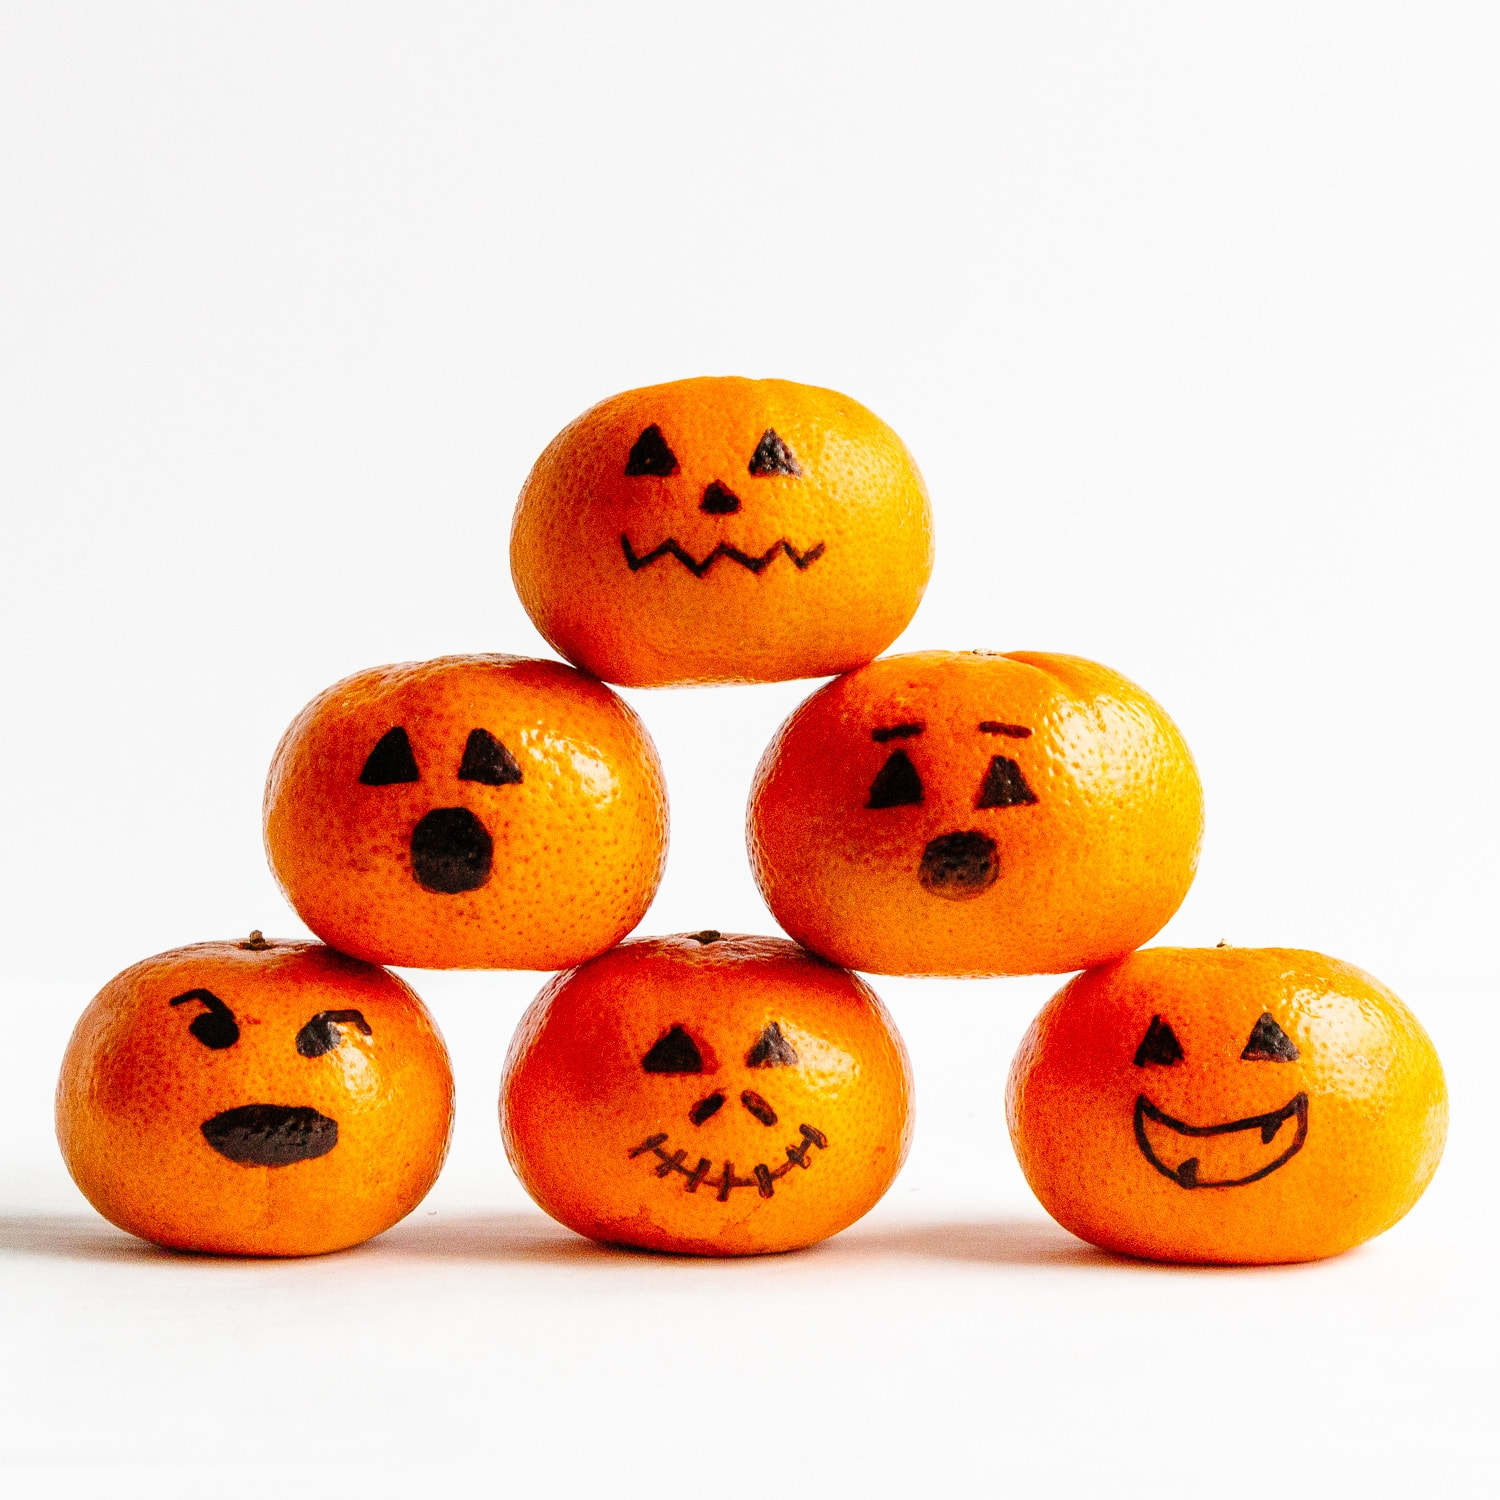 Mandarins with faces drawn on with black permanent marker to look like Jack O' Lanterns.